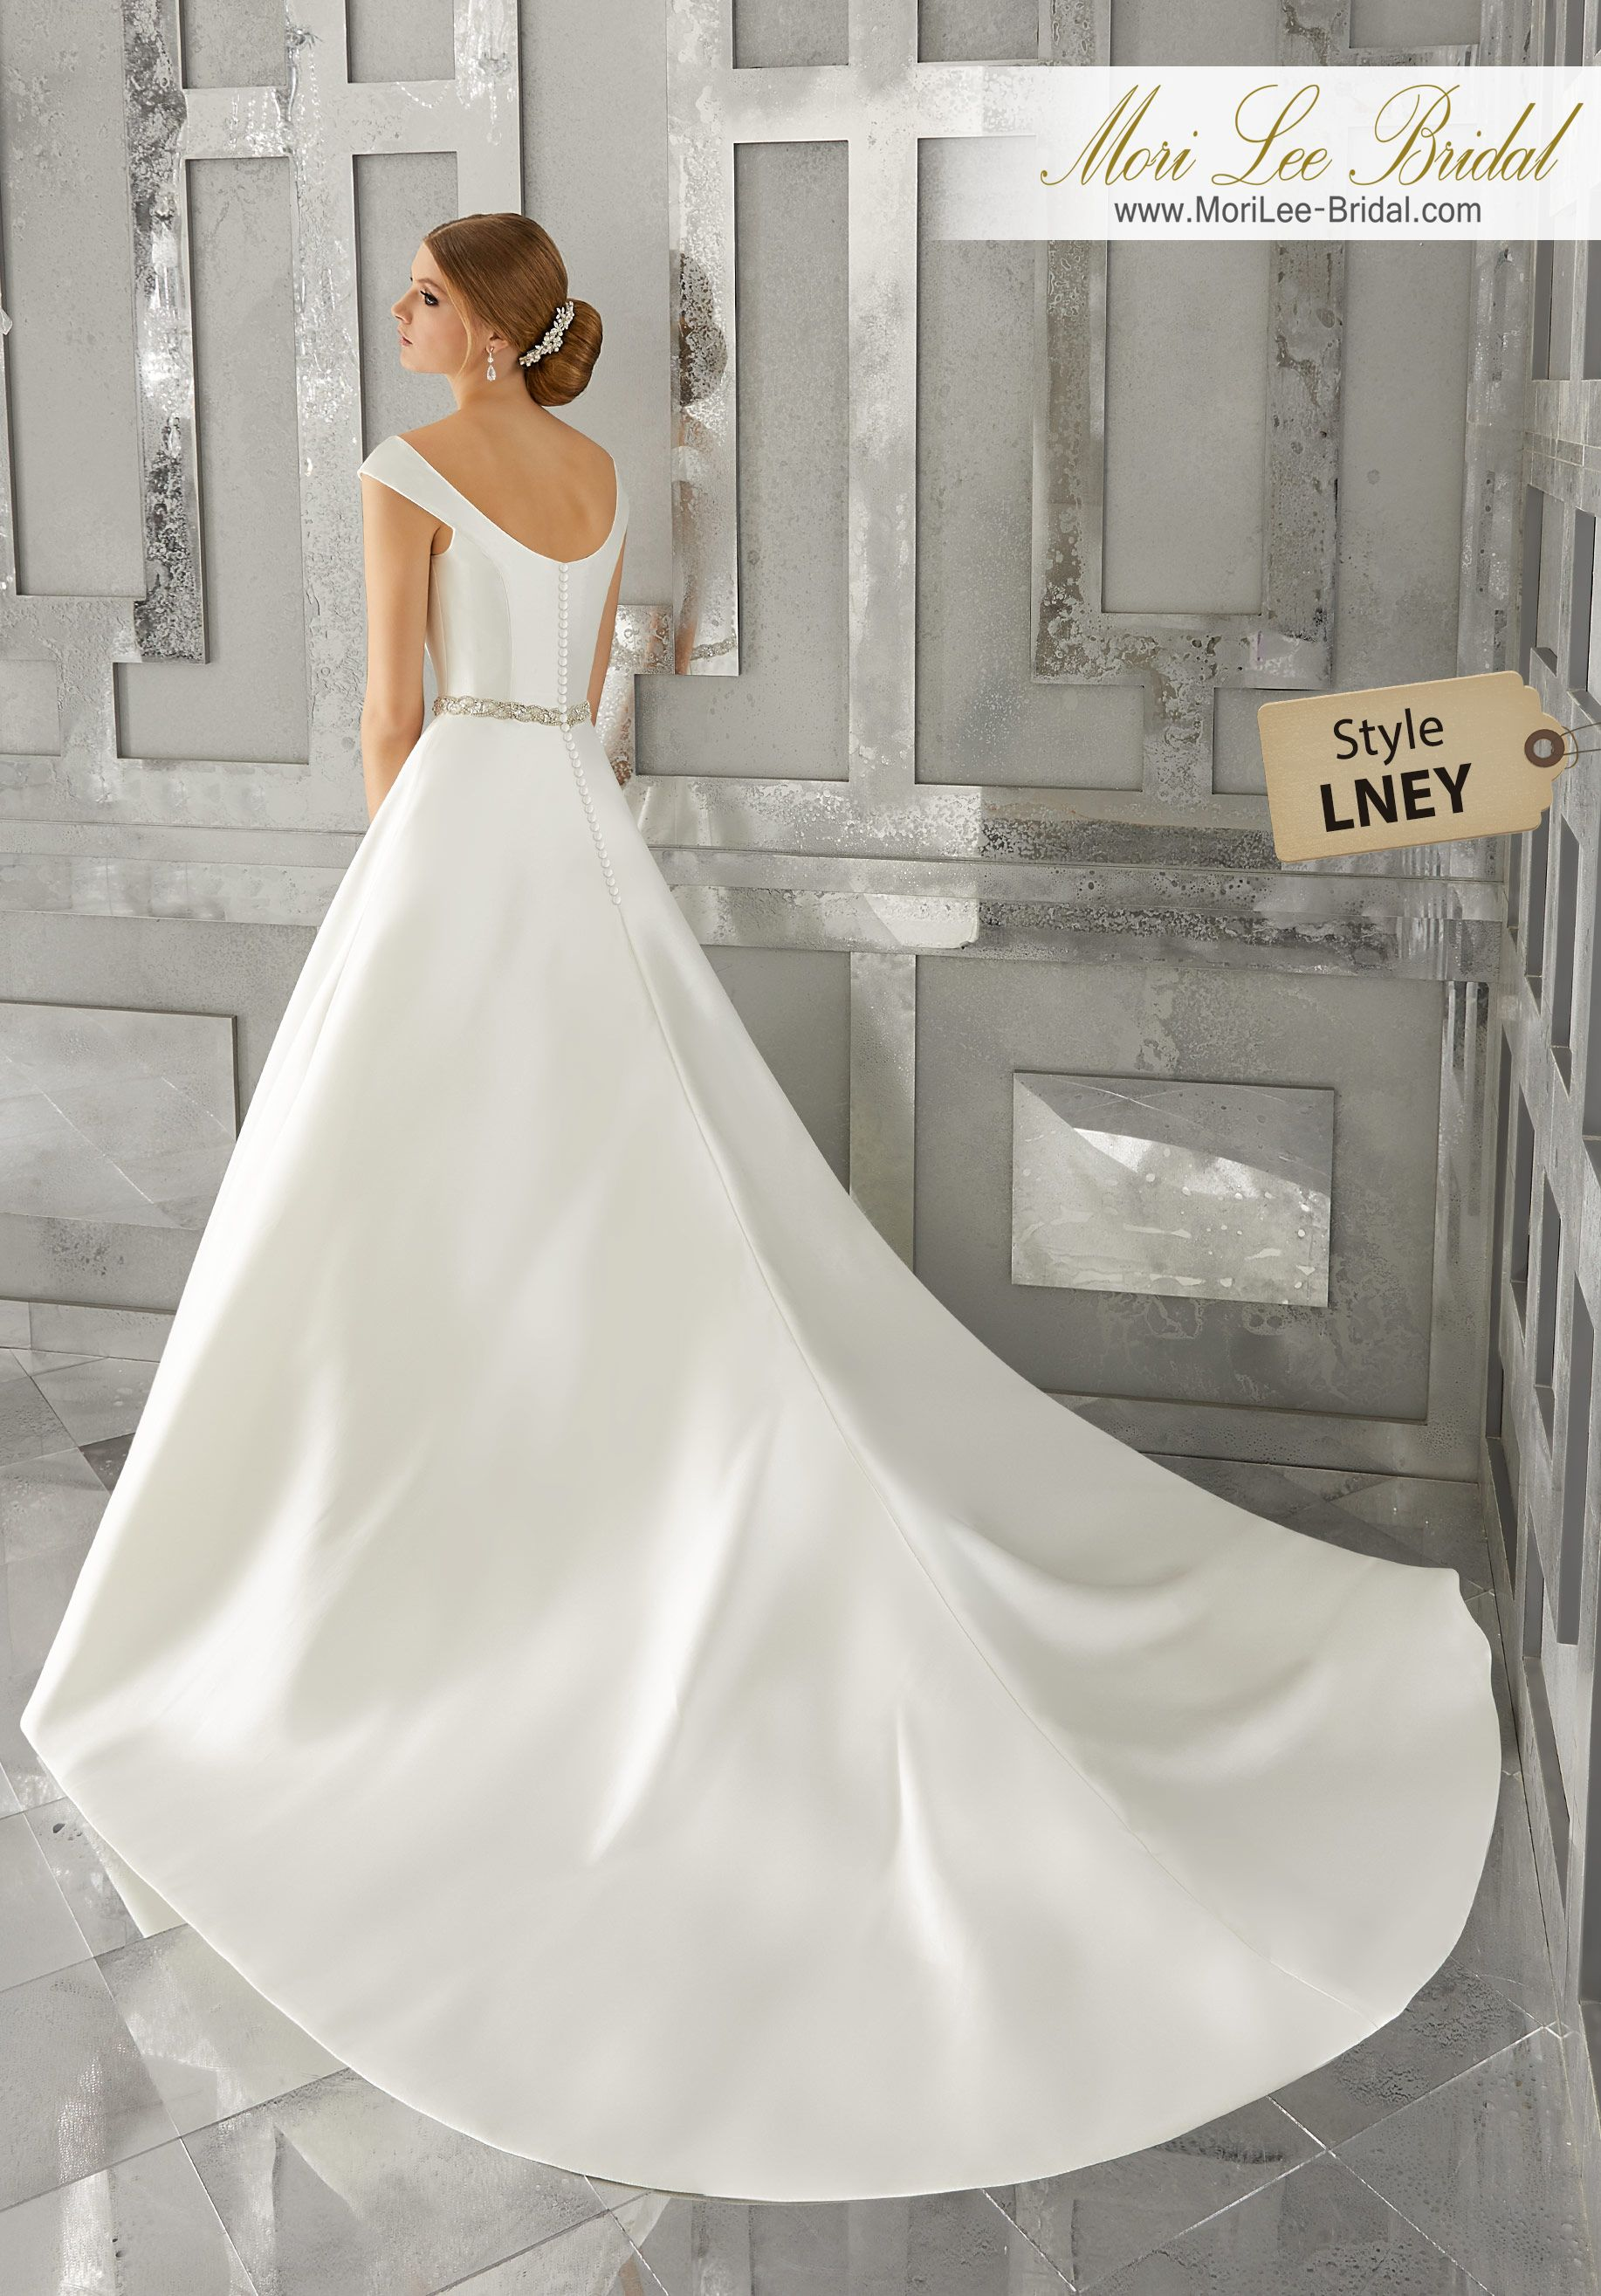 Pearl belt for wedding dress  Style LNEY Marquesa Wedding Dress Classic and Chic This Marcella